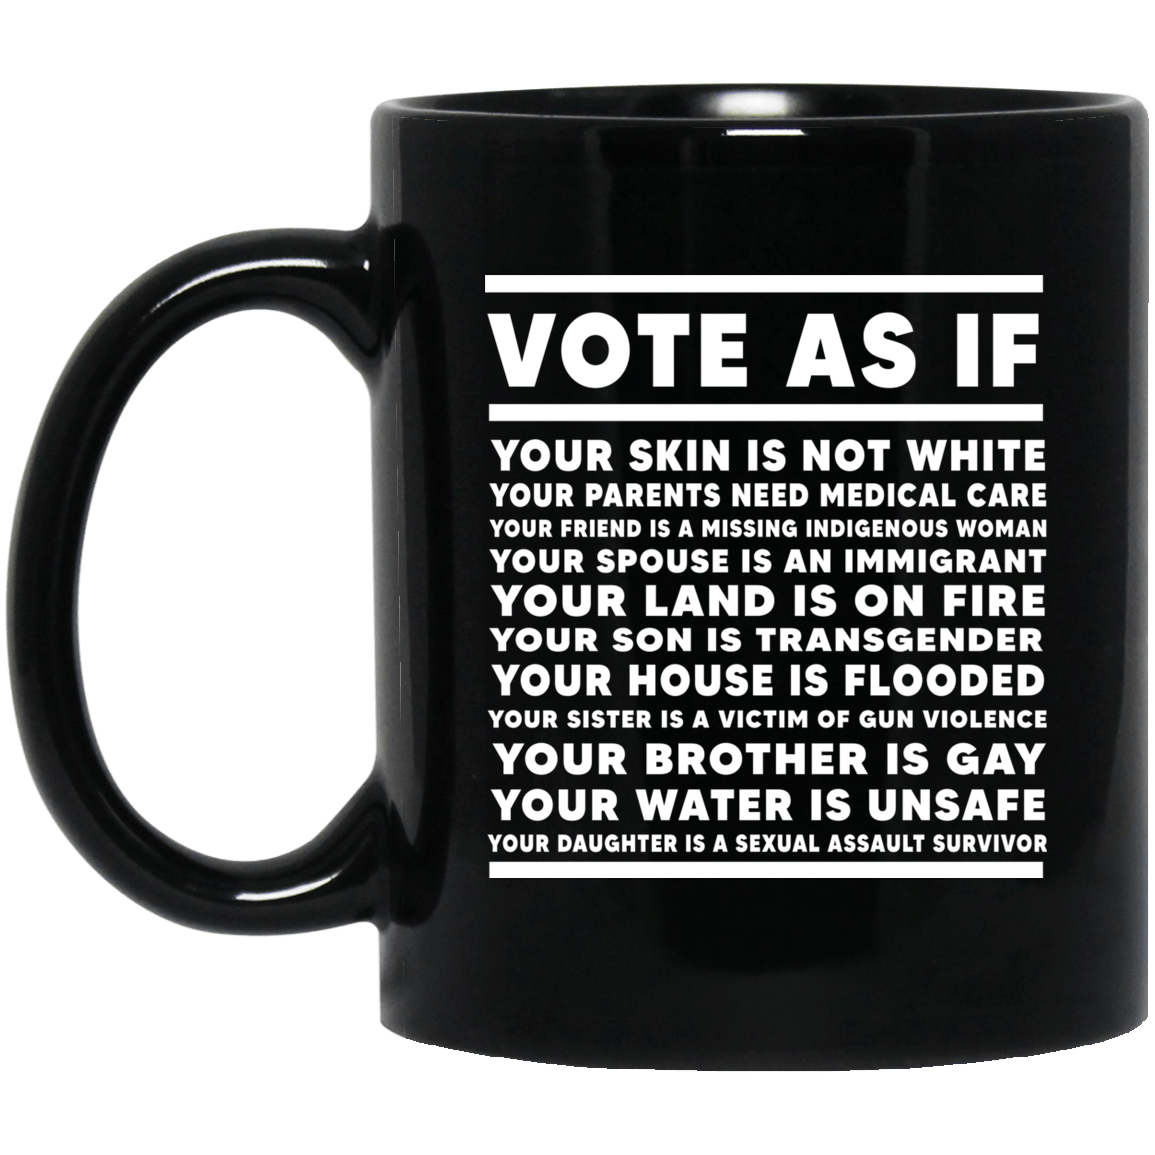 Vote As If Your Skin Is Not White Mug 1065-10181-88282968-49307 - Tee Ript